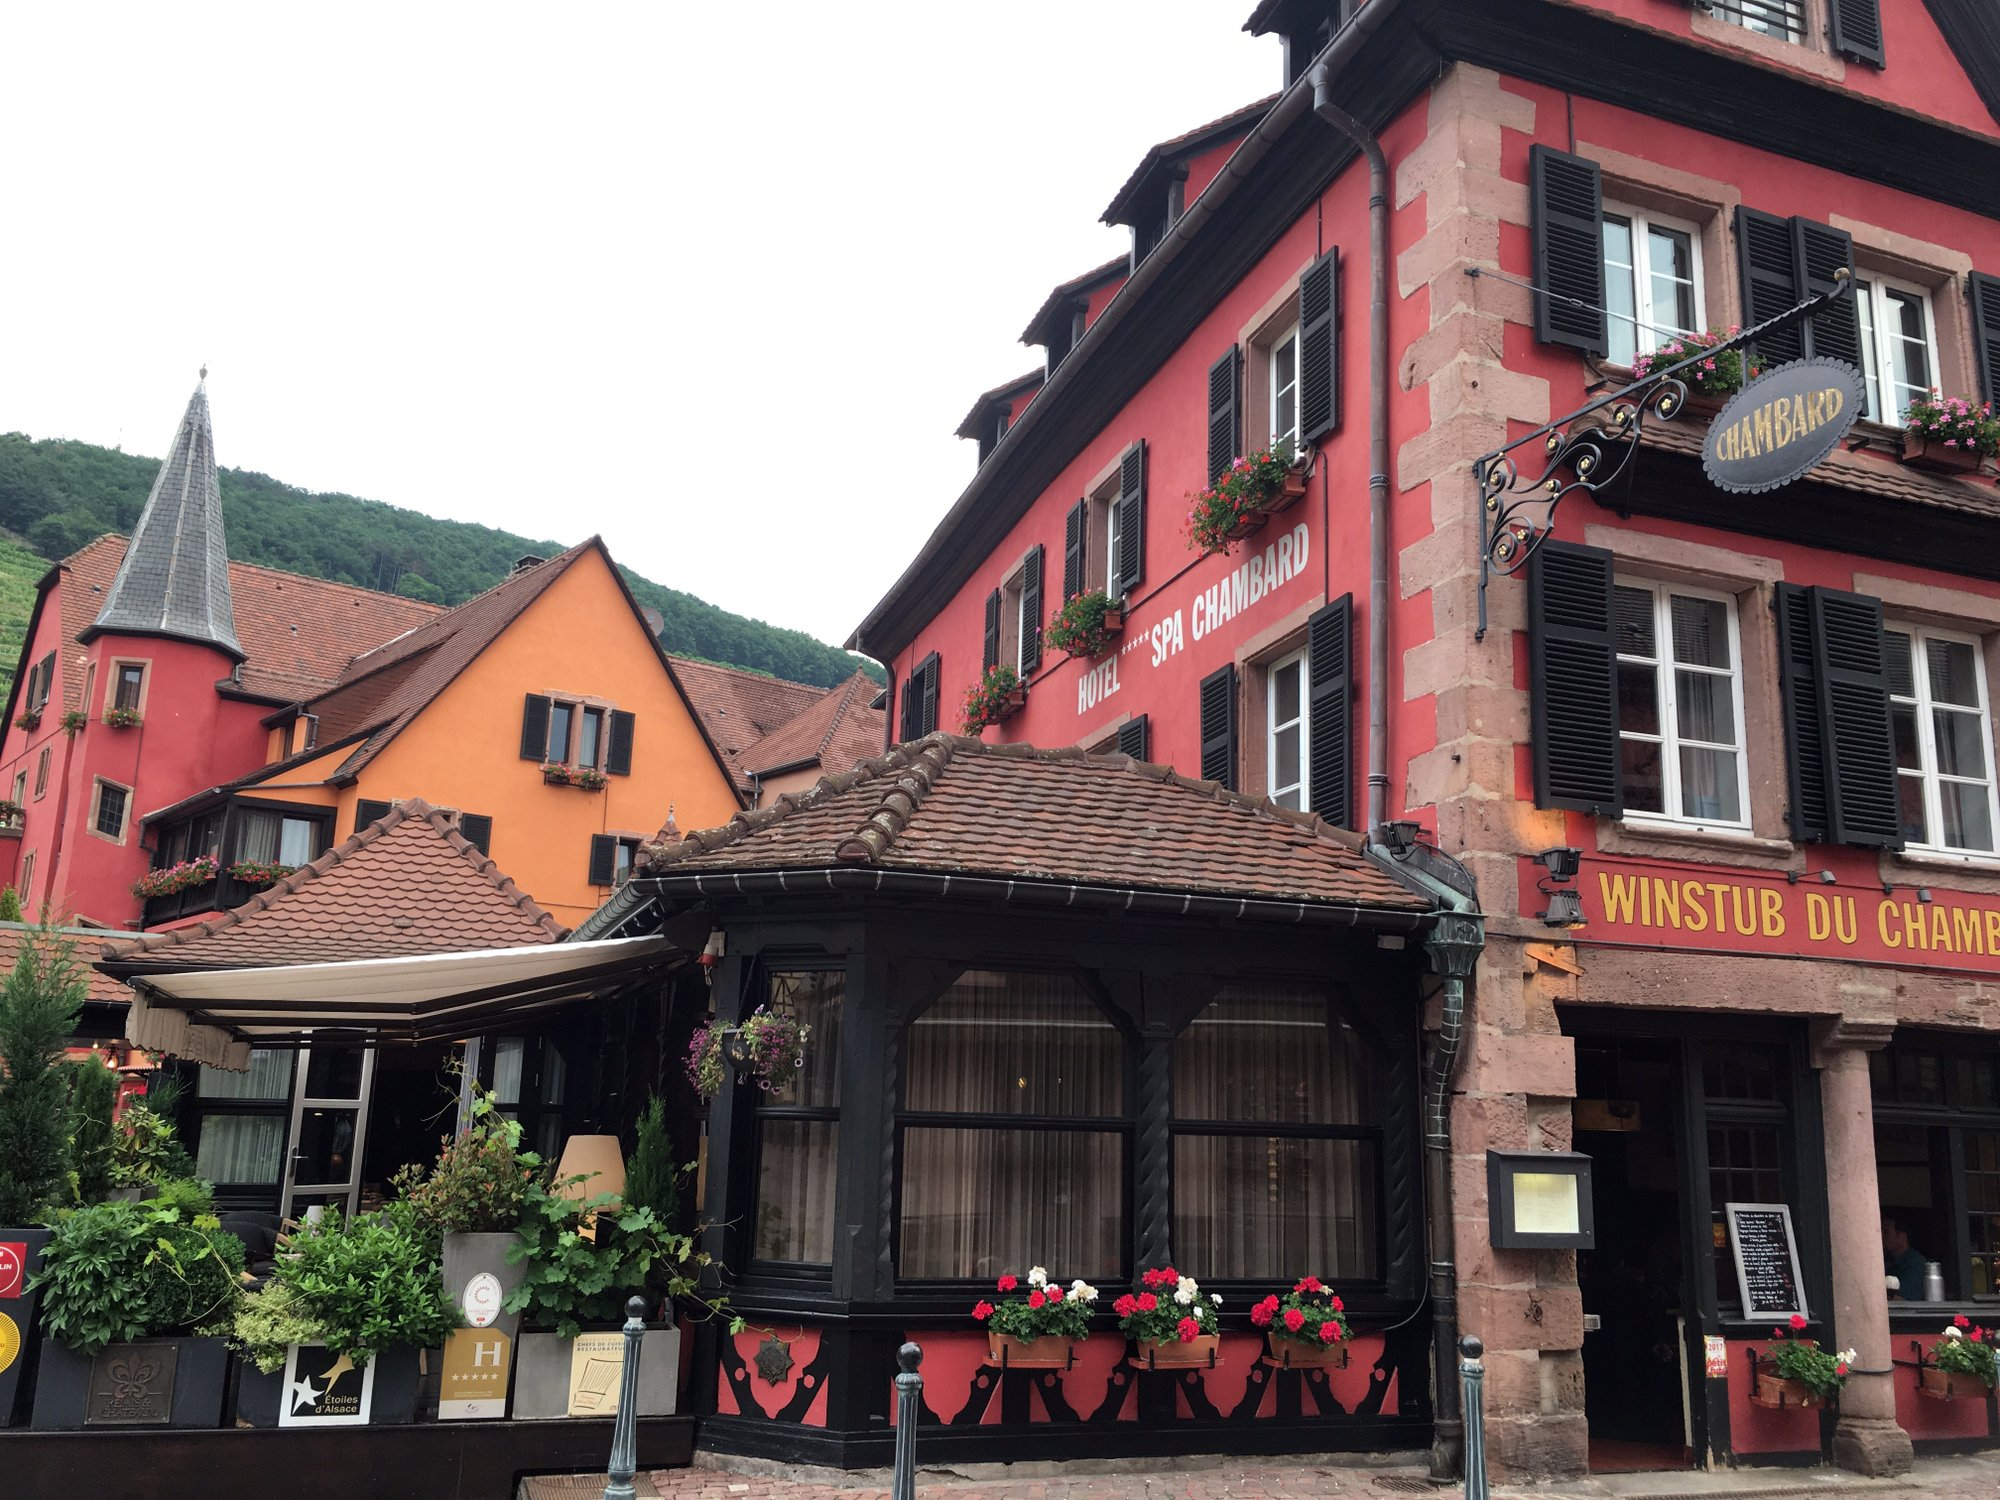 A general view of the Le Chambard hotel where TV chef Anthony Bourdain was found, in Kaysersberg, France, Friday, June 8, 2018. A prosecutor in France says Anthony Bourdain apparently hanged himself in a luxury hotel in the small town of Kaysersberg. French media quoted Colmar prosecutor Christian de Rocquigny du Fayel as saying that